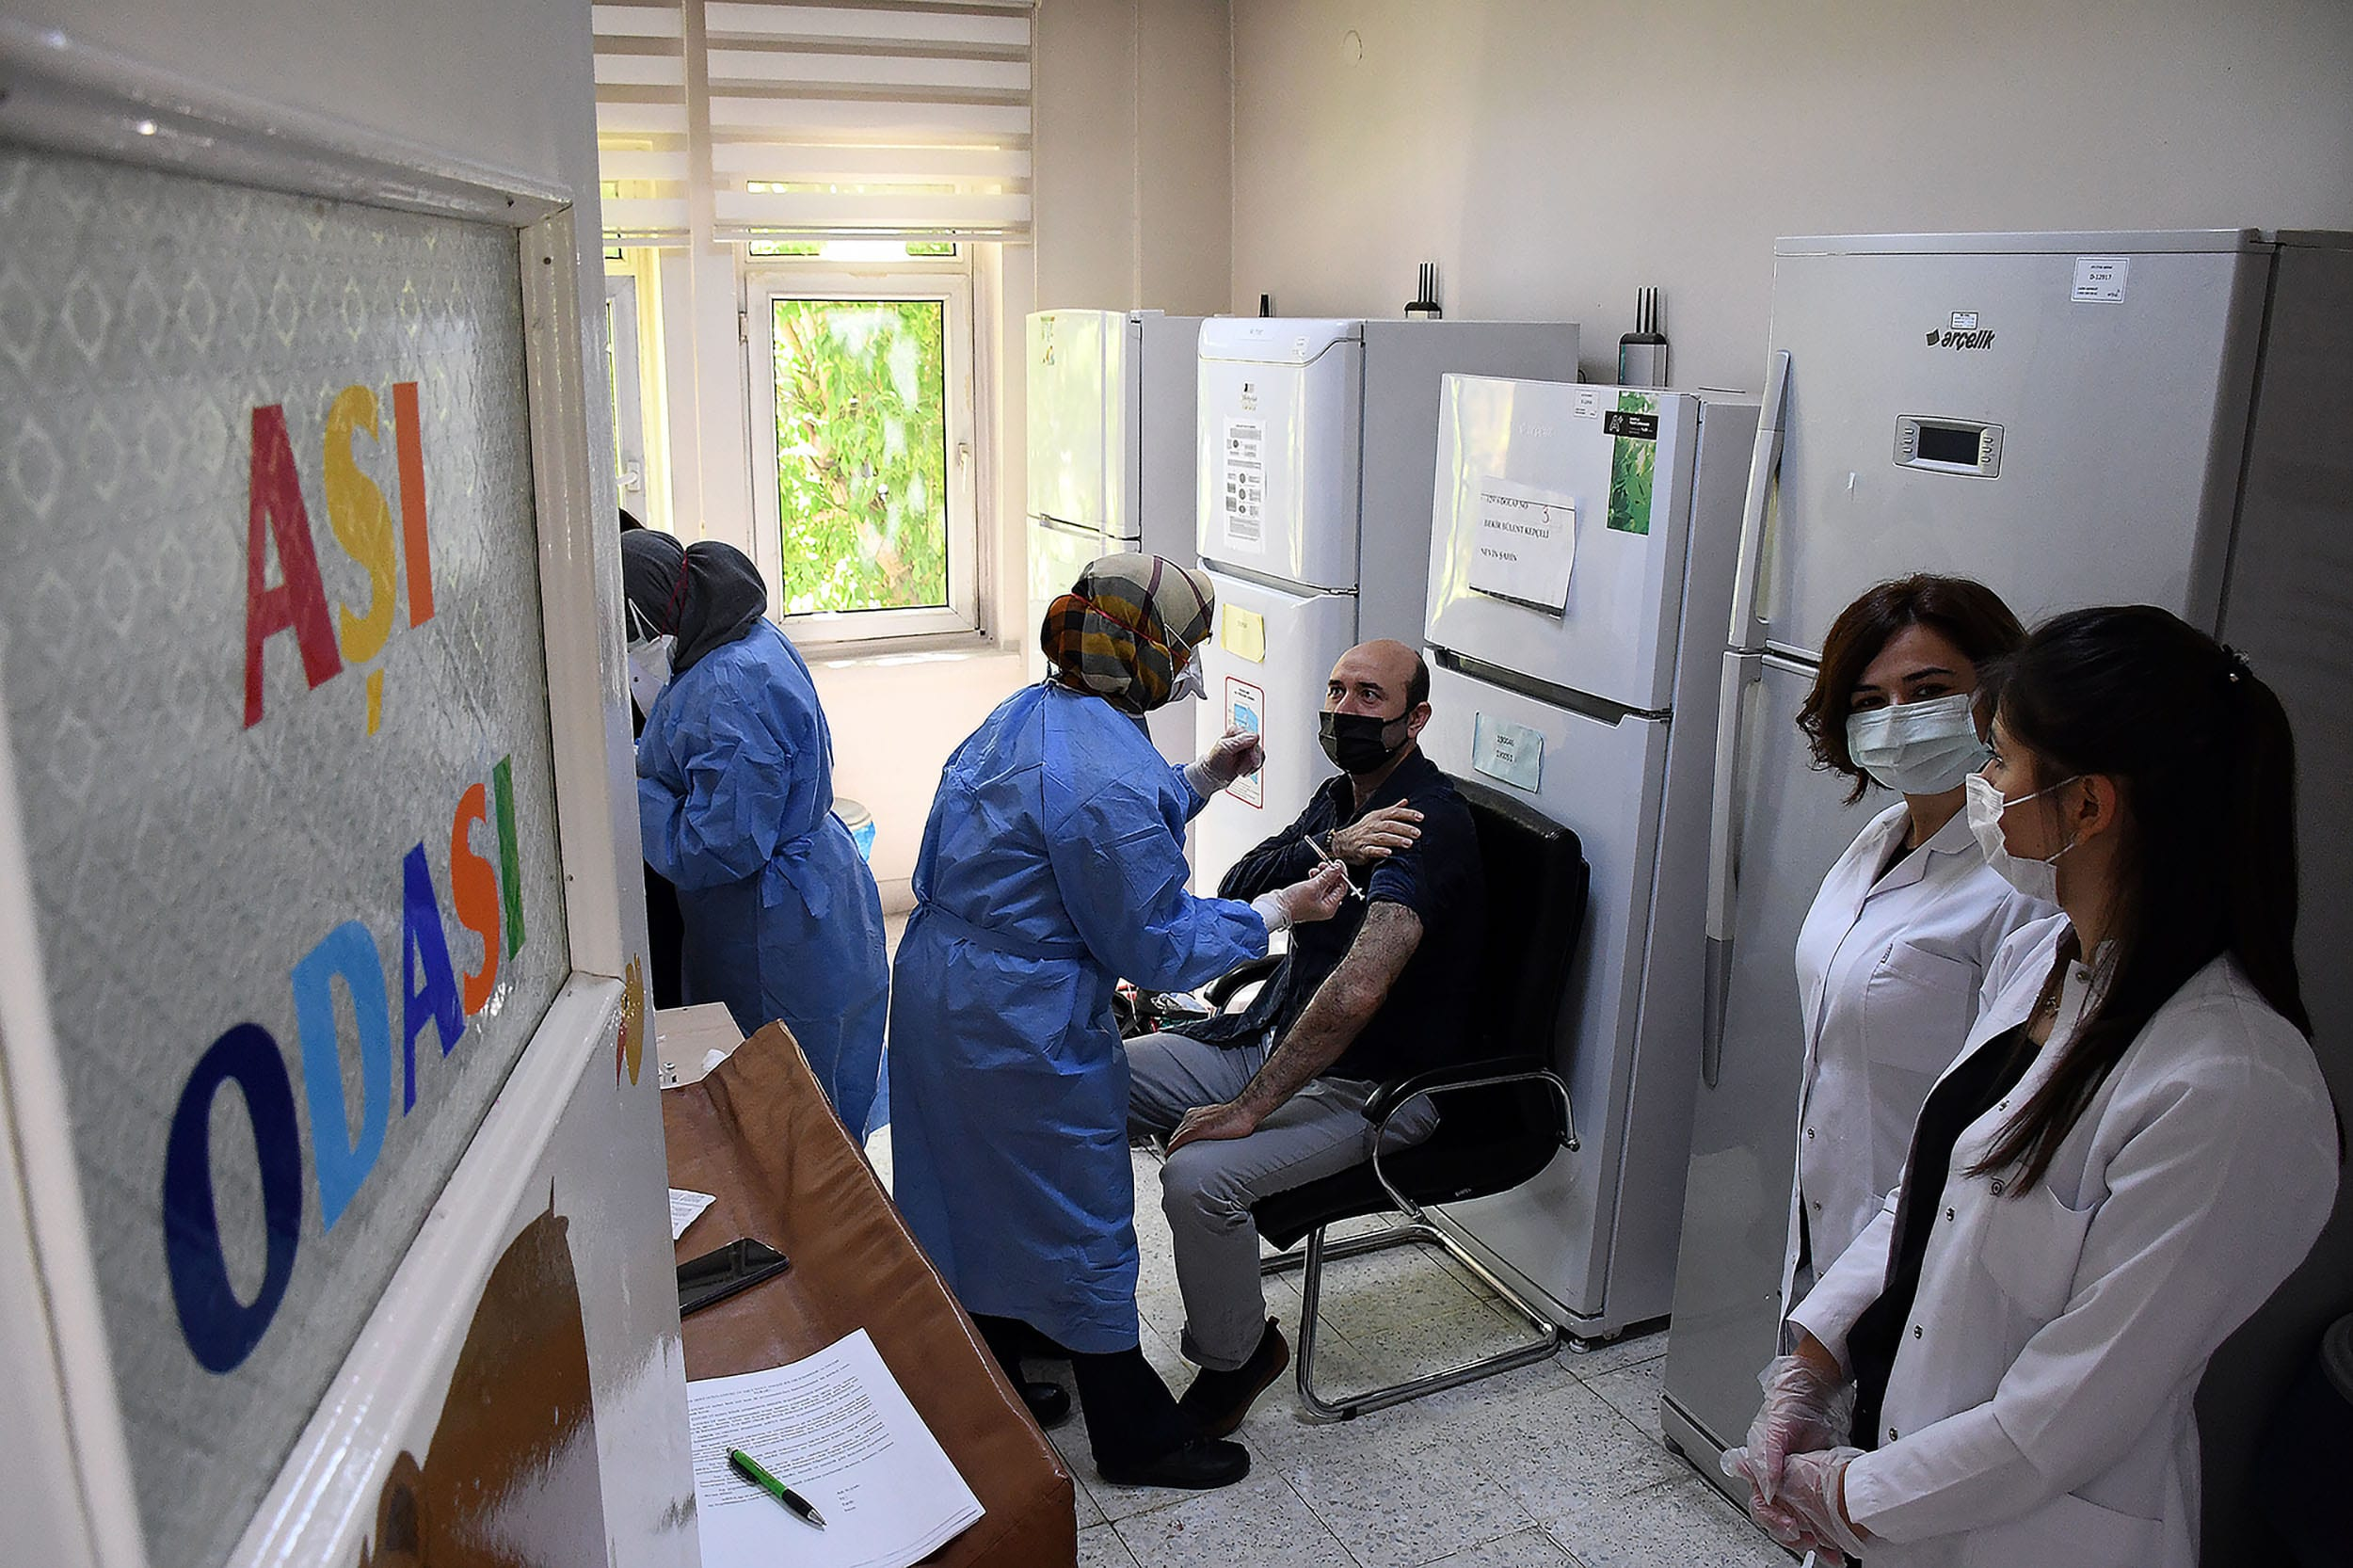 Turkey lowers COVID-19 vaccine eligibility age to 45